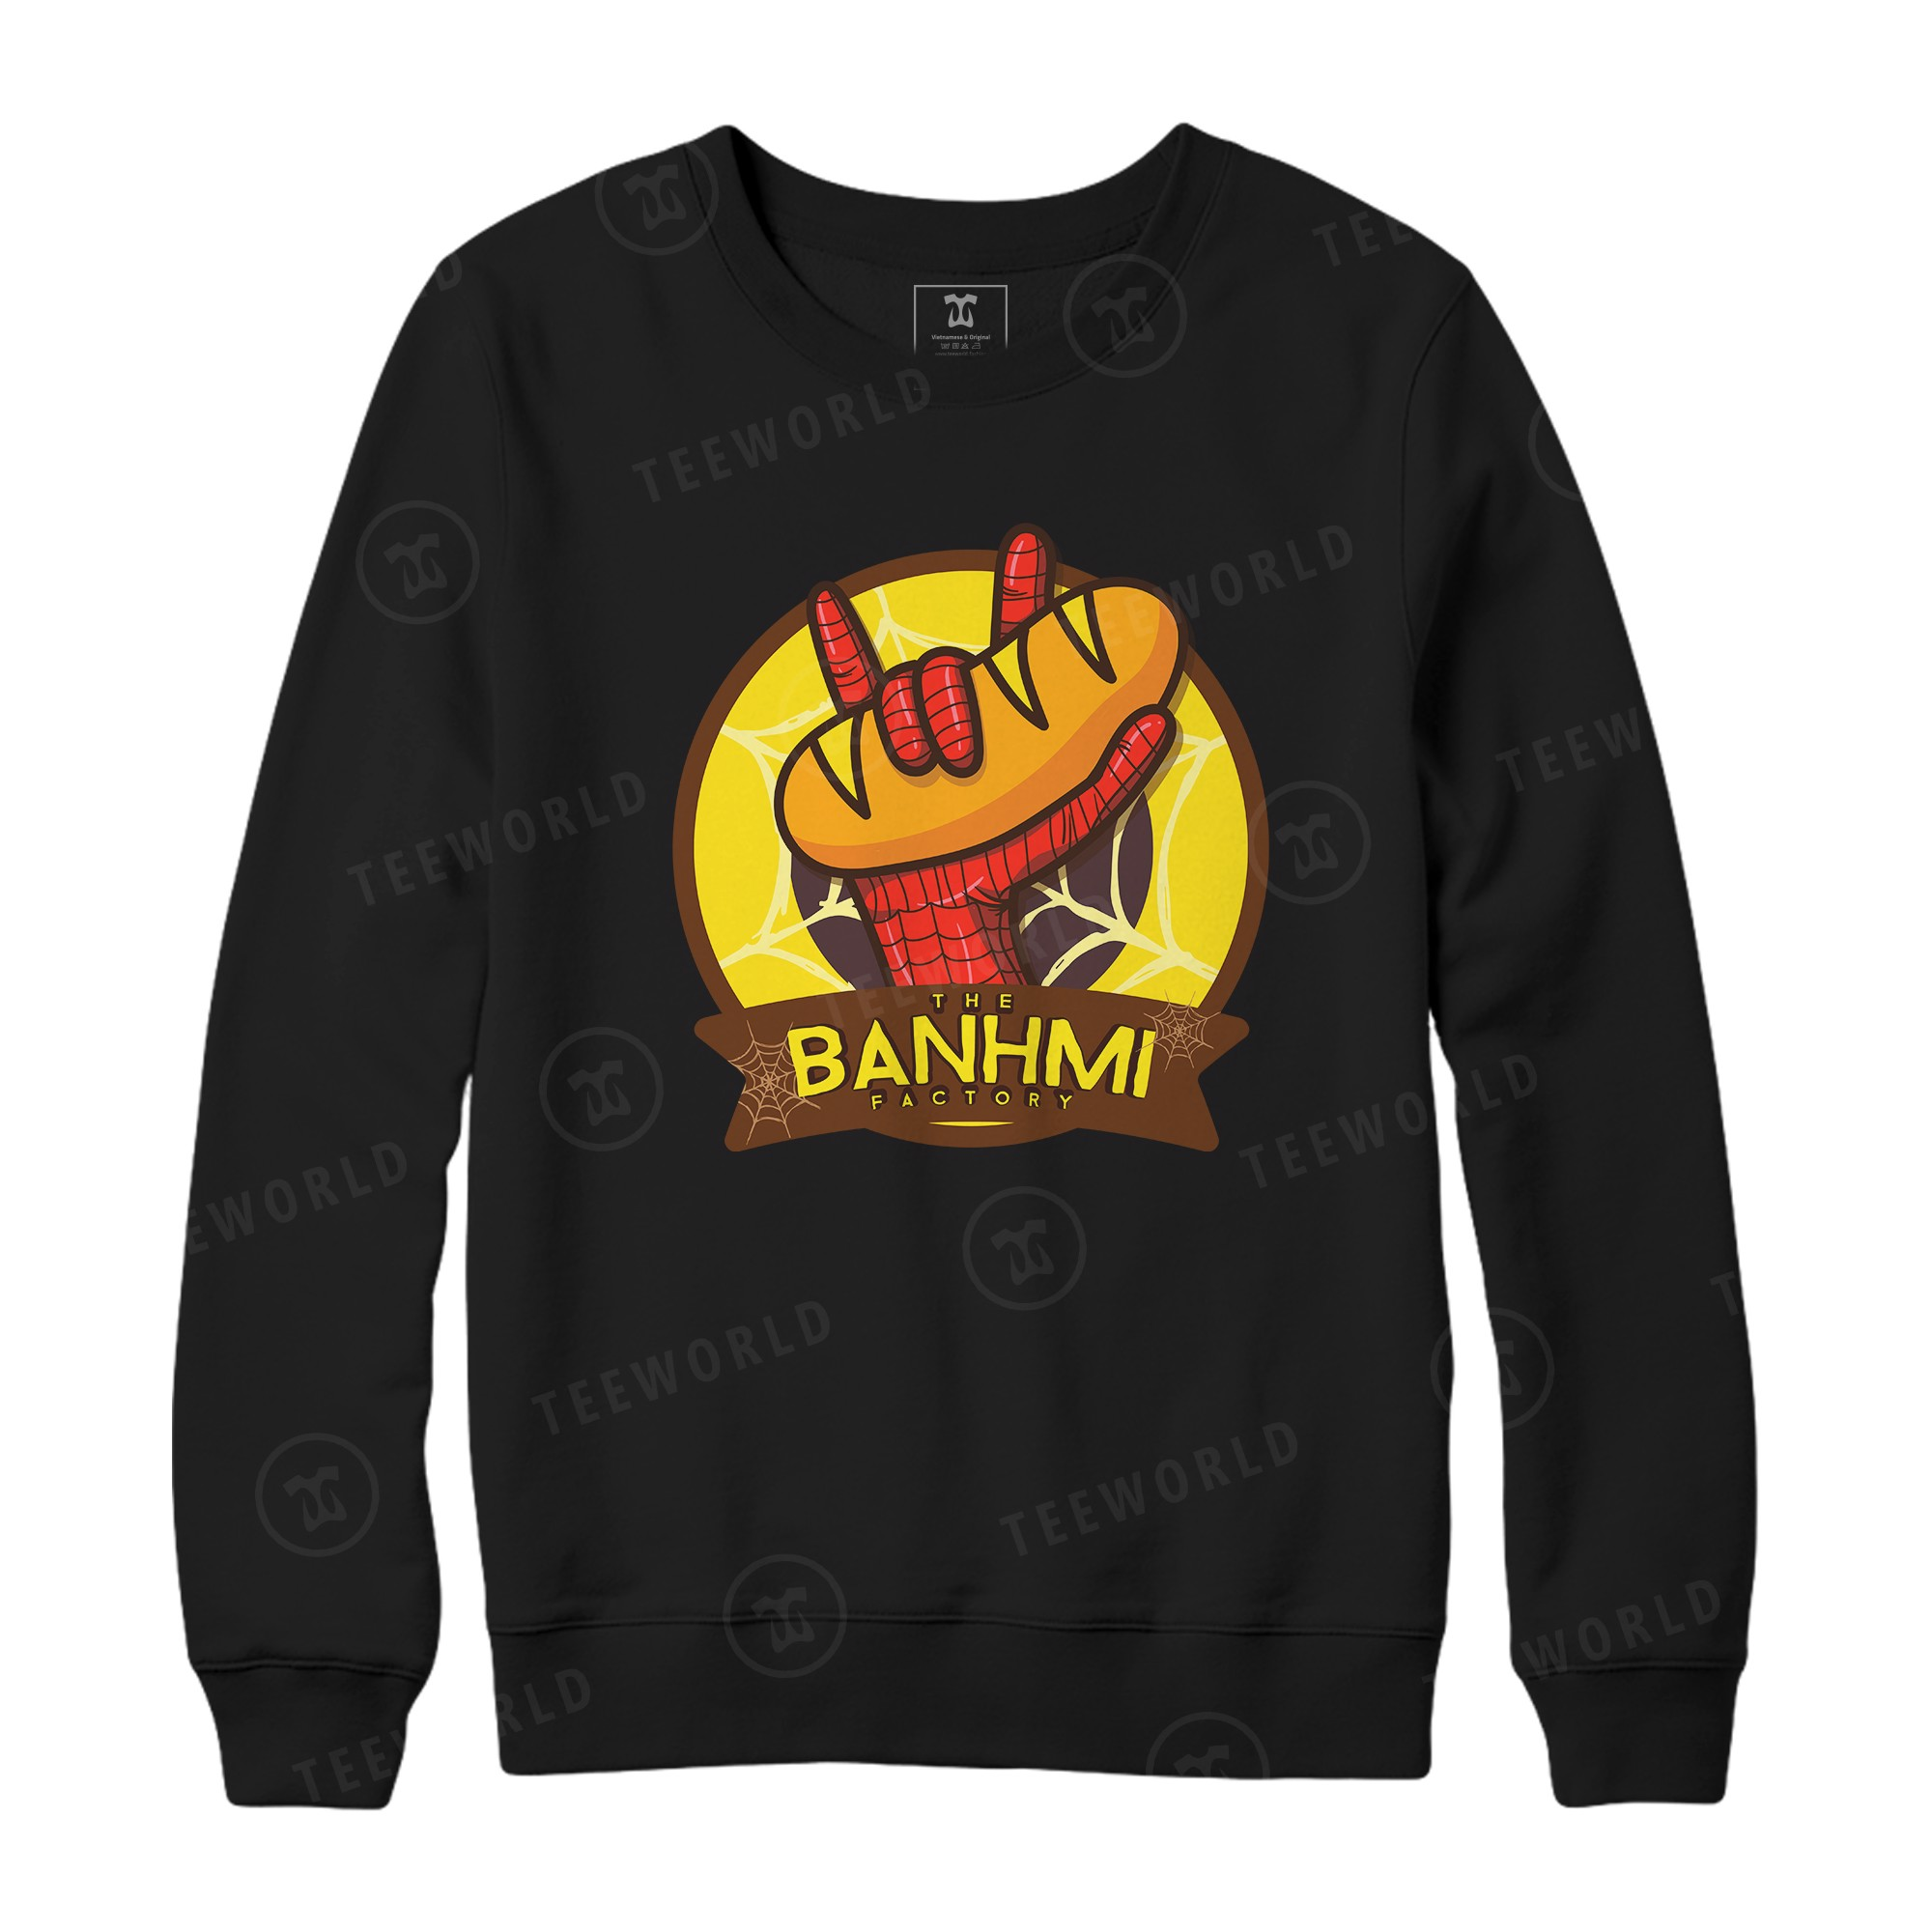 Spider Man Hand X The Banhmi Factory Sweater